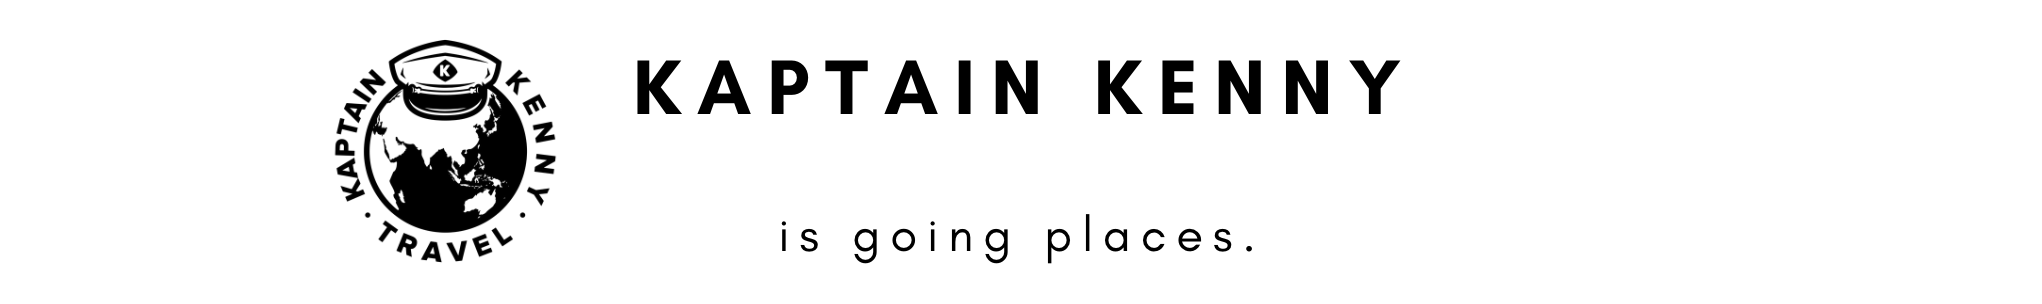 Kaptain Kenny Travel